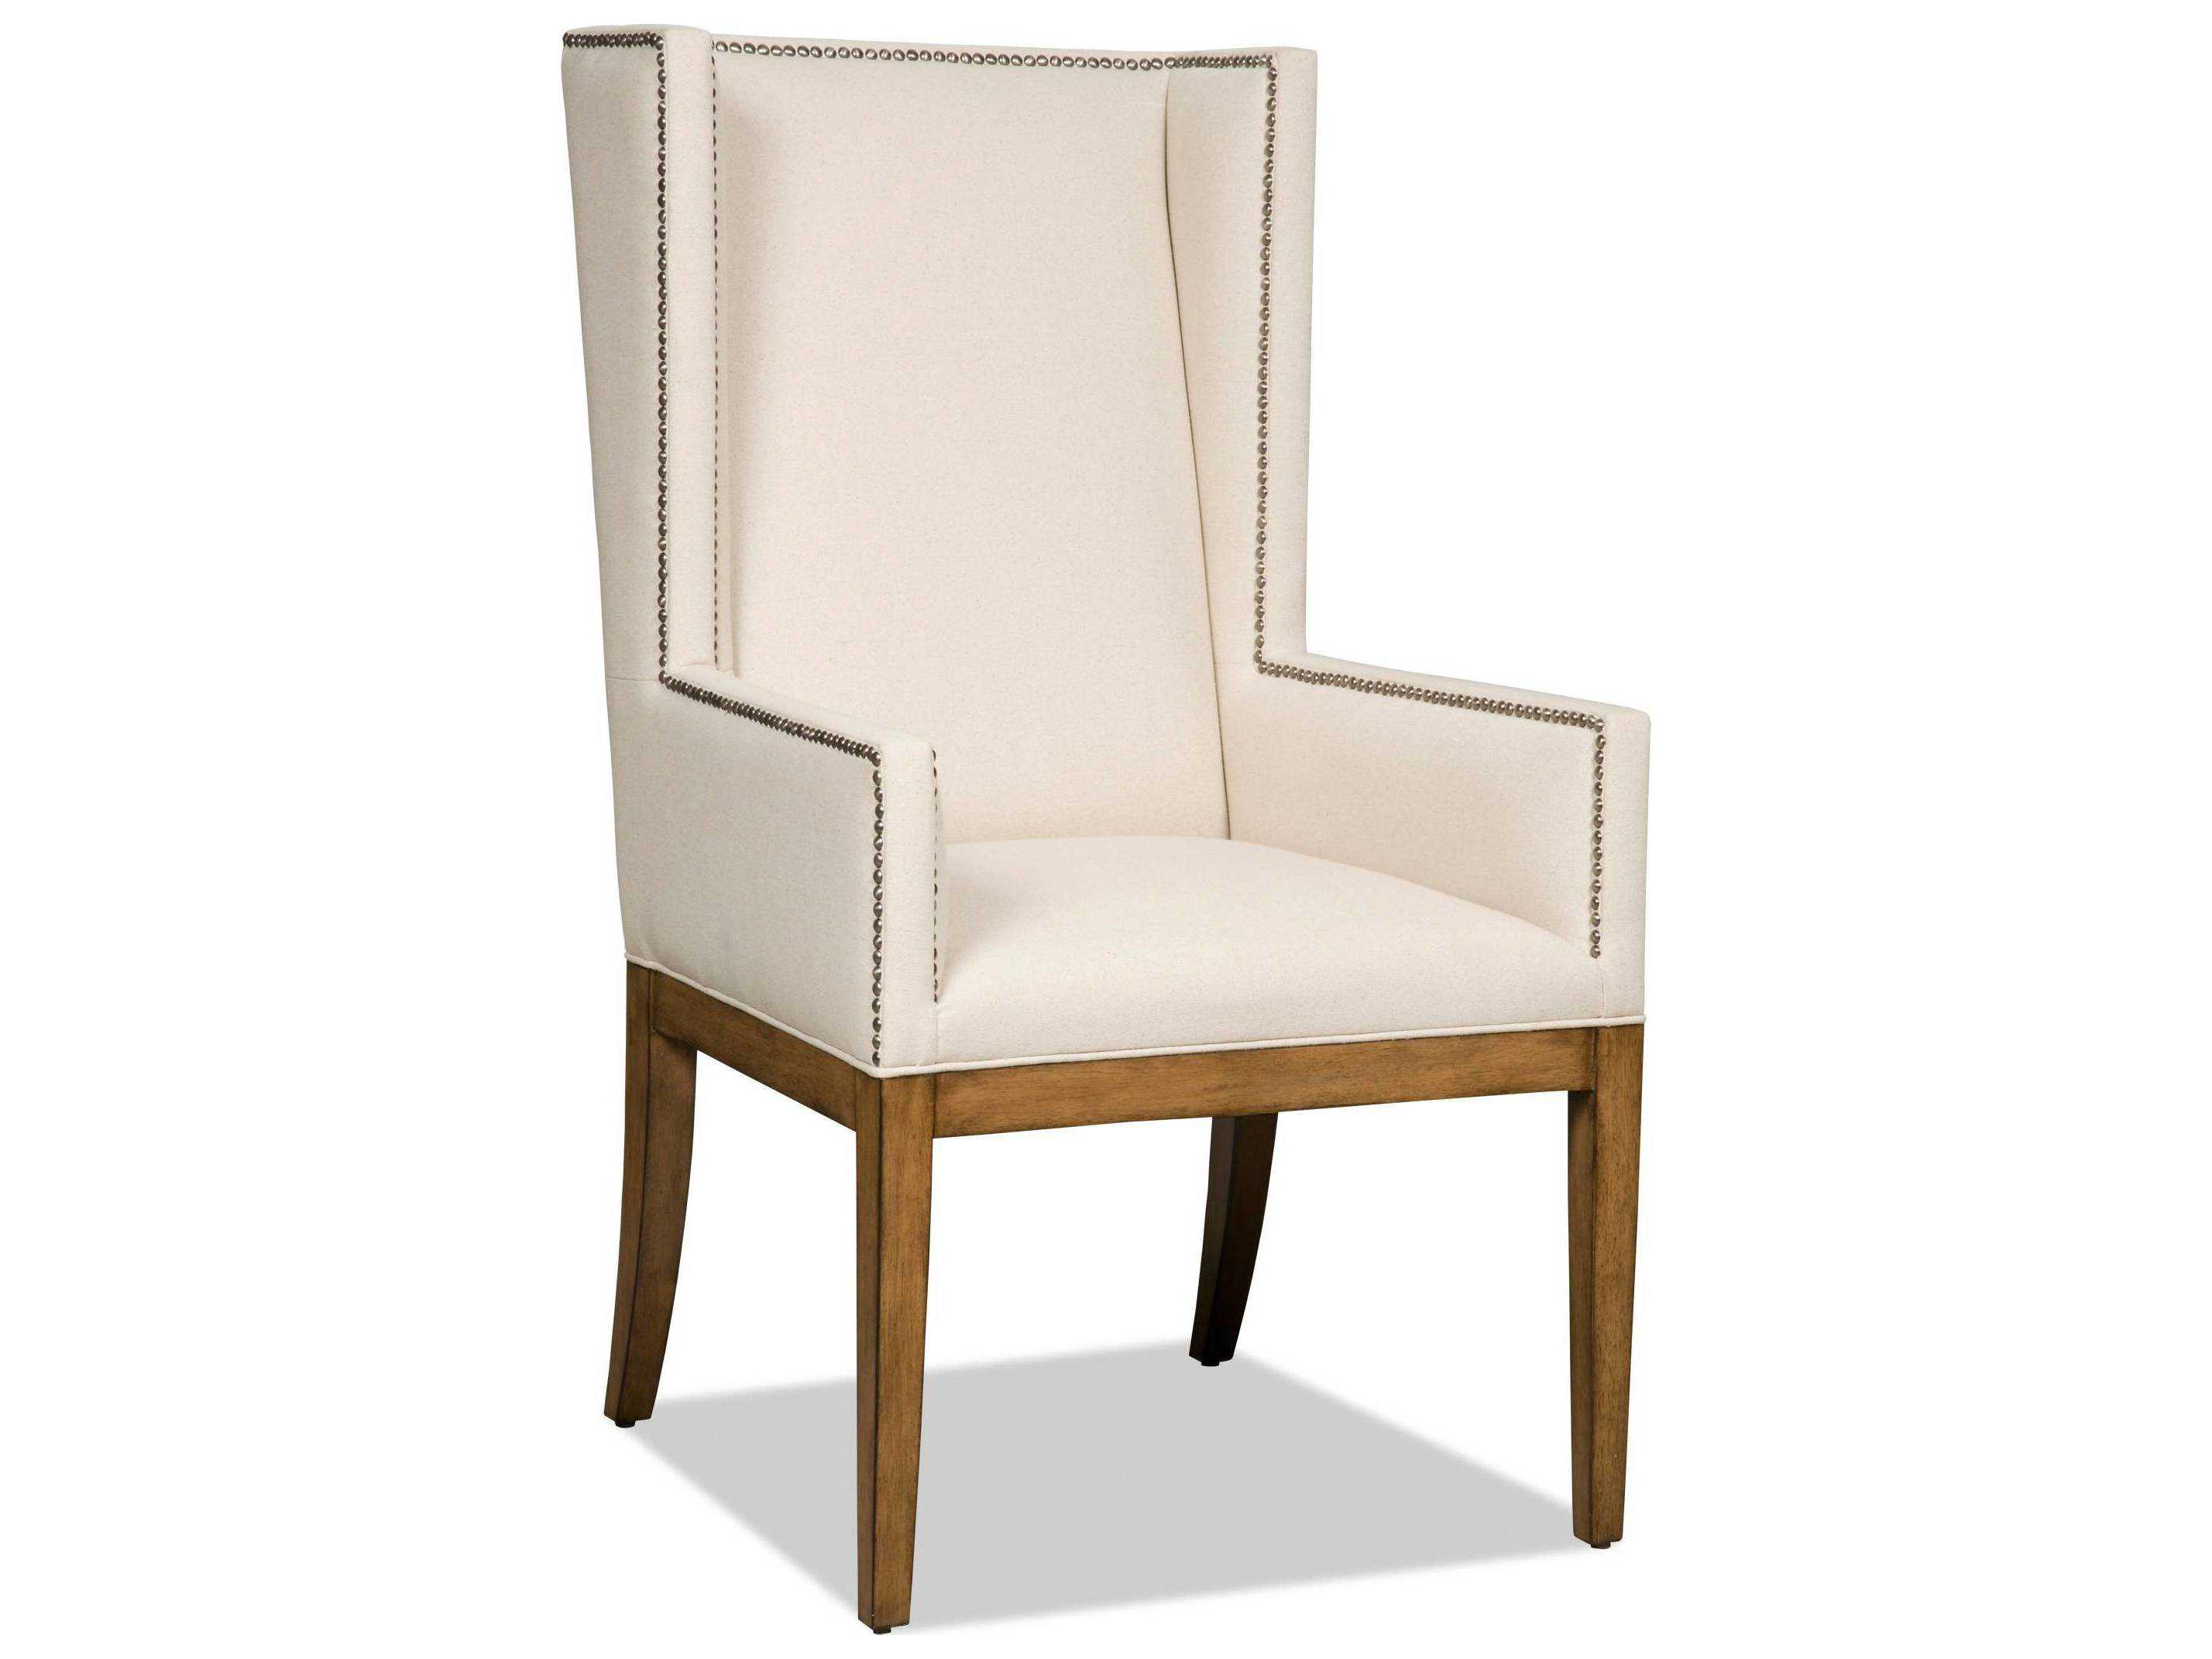 wooden dining room chairs with arms mid century rocking chair canada hooker furniture bayeaux natural medium wood arm